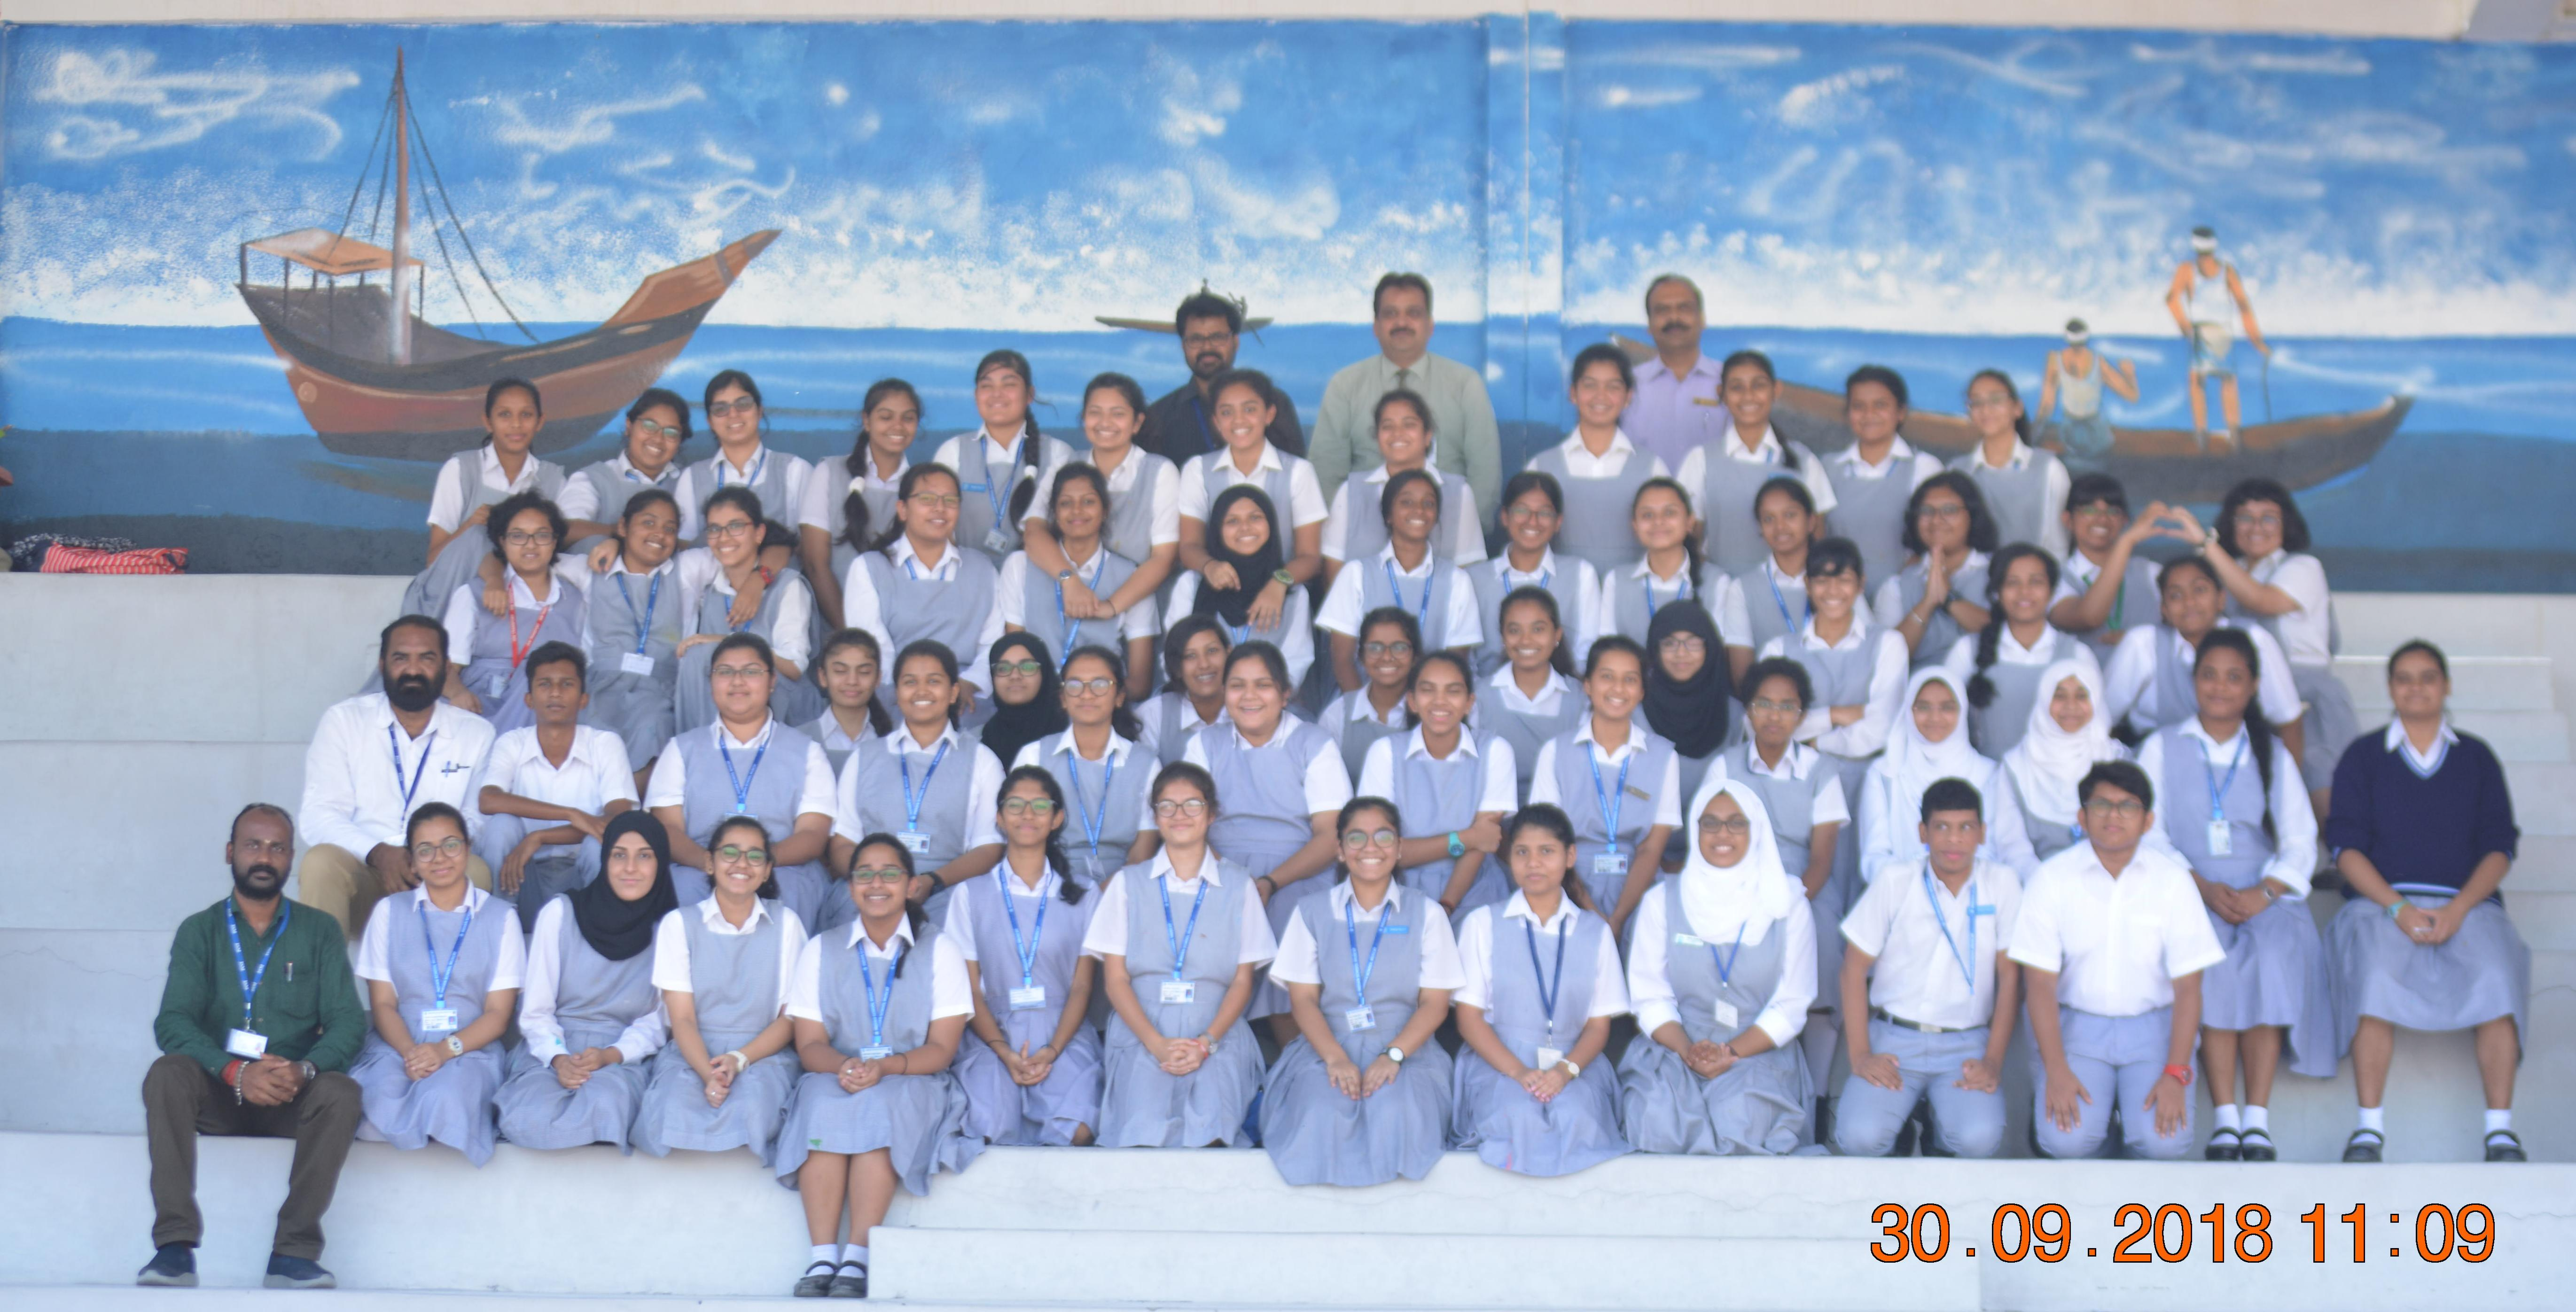 Indian School Muscat's walls turn into panorama of artistic expression overnight